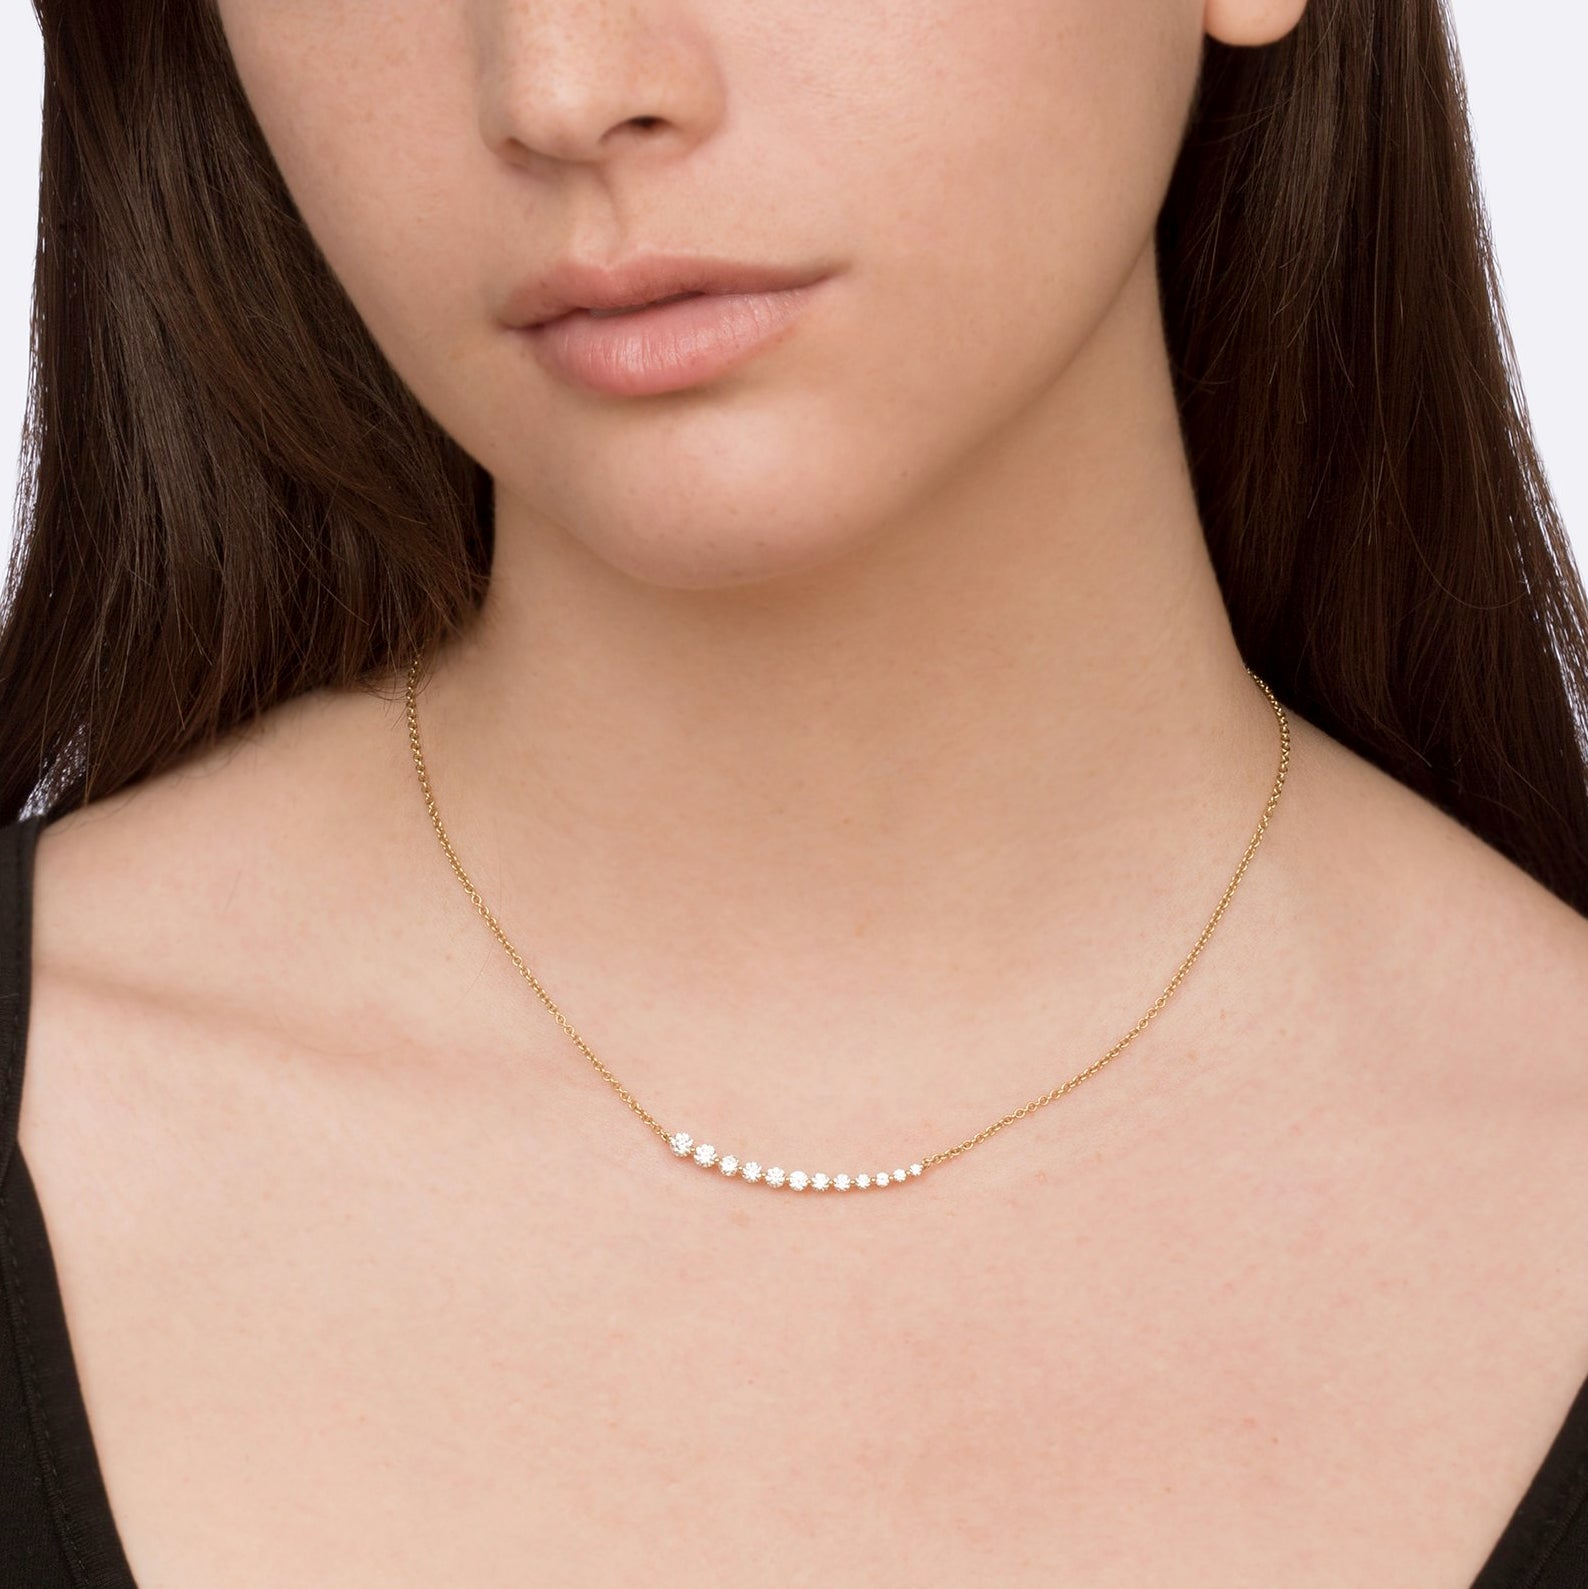 Gold Graduated Diamond Necklace by Anita Ko for Broken English Jewelry